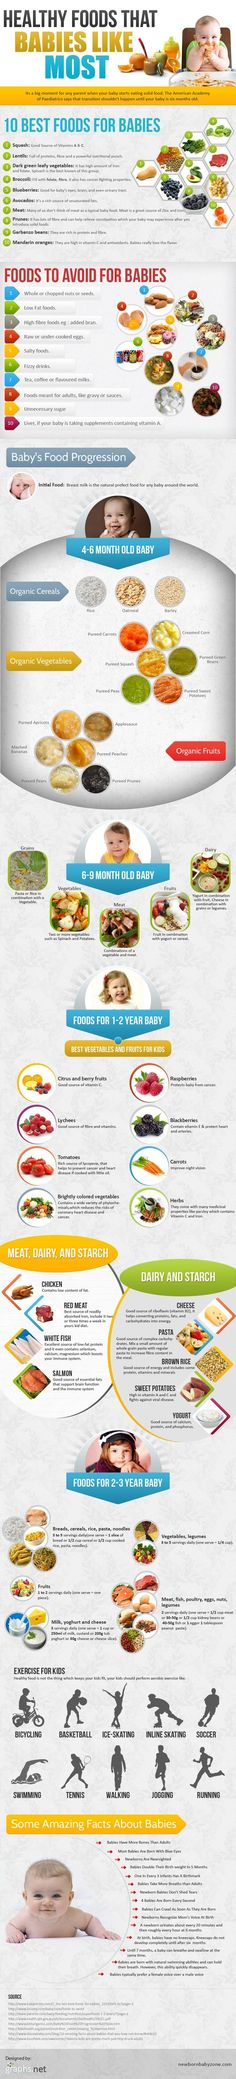 baby,foods,like,first time mother,baby care,